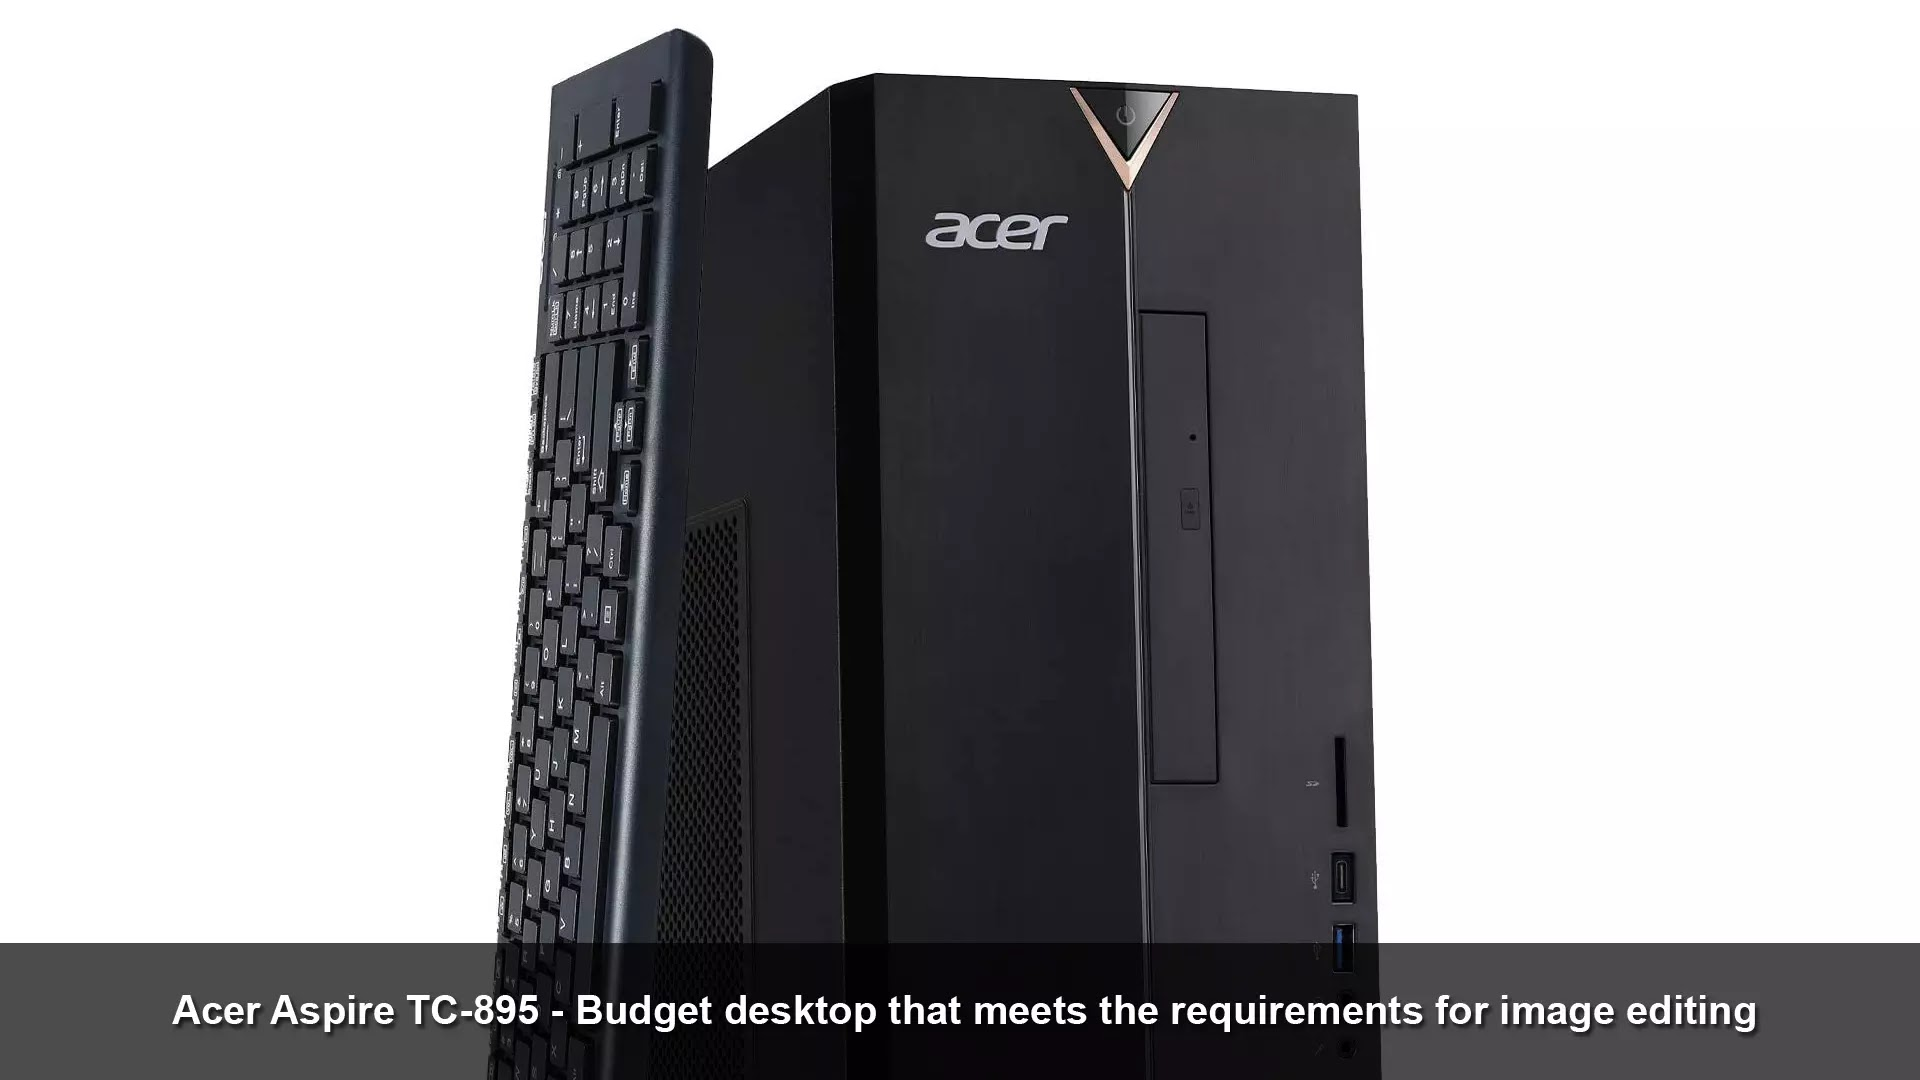 Acer Aspire TC-895 - budget desktop that meets the requirements for image editing